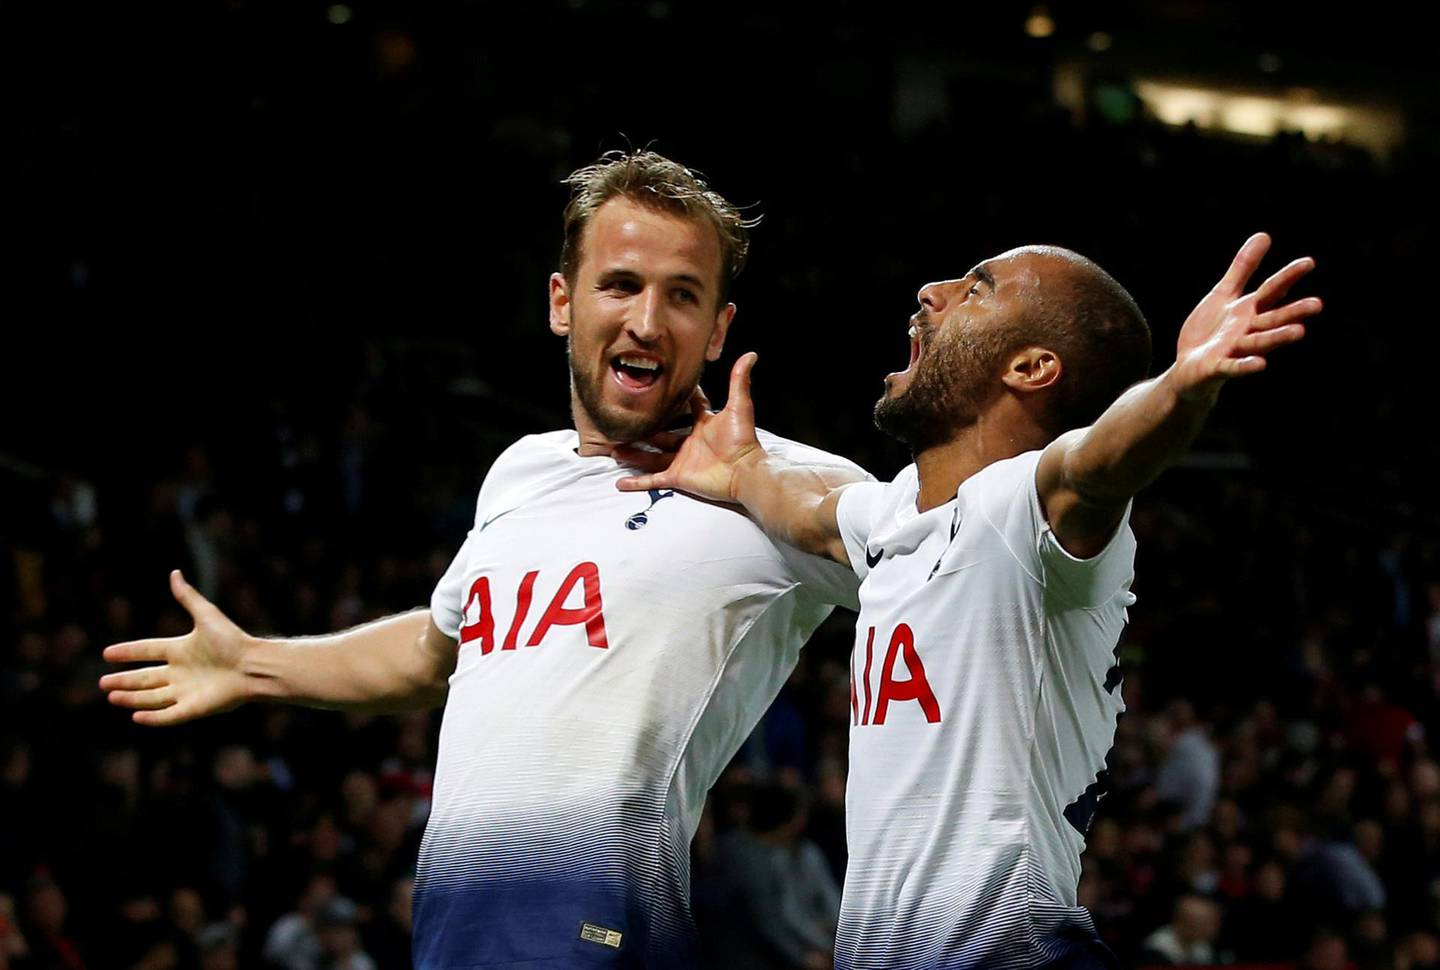 """Soccer Football - Premier League - Manchester United v Tottenham Hotspur - Old Trafford, Manchester, Britain - August 27, 2018  Tottenham's Lucas Moura celebrates scoring their third goal with Harry Kane          REUTERS/Andrew Yates  EDITORIAL USE ONLY. No use with unauthorized audio, video, data, fixture lists, club/league logos or """"live"""" services. Online in-match use limited to 75 images, no video emulation. No use in betting, games or single club/league/player publications.  Please contact your account representative for further details.      TPX IMAGES OF THE DAY"""